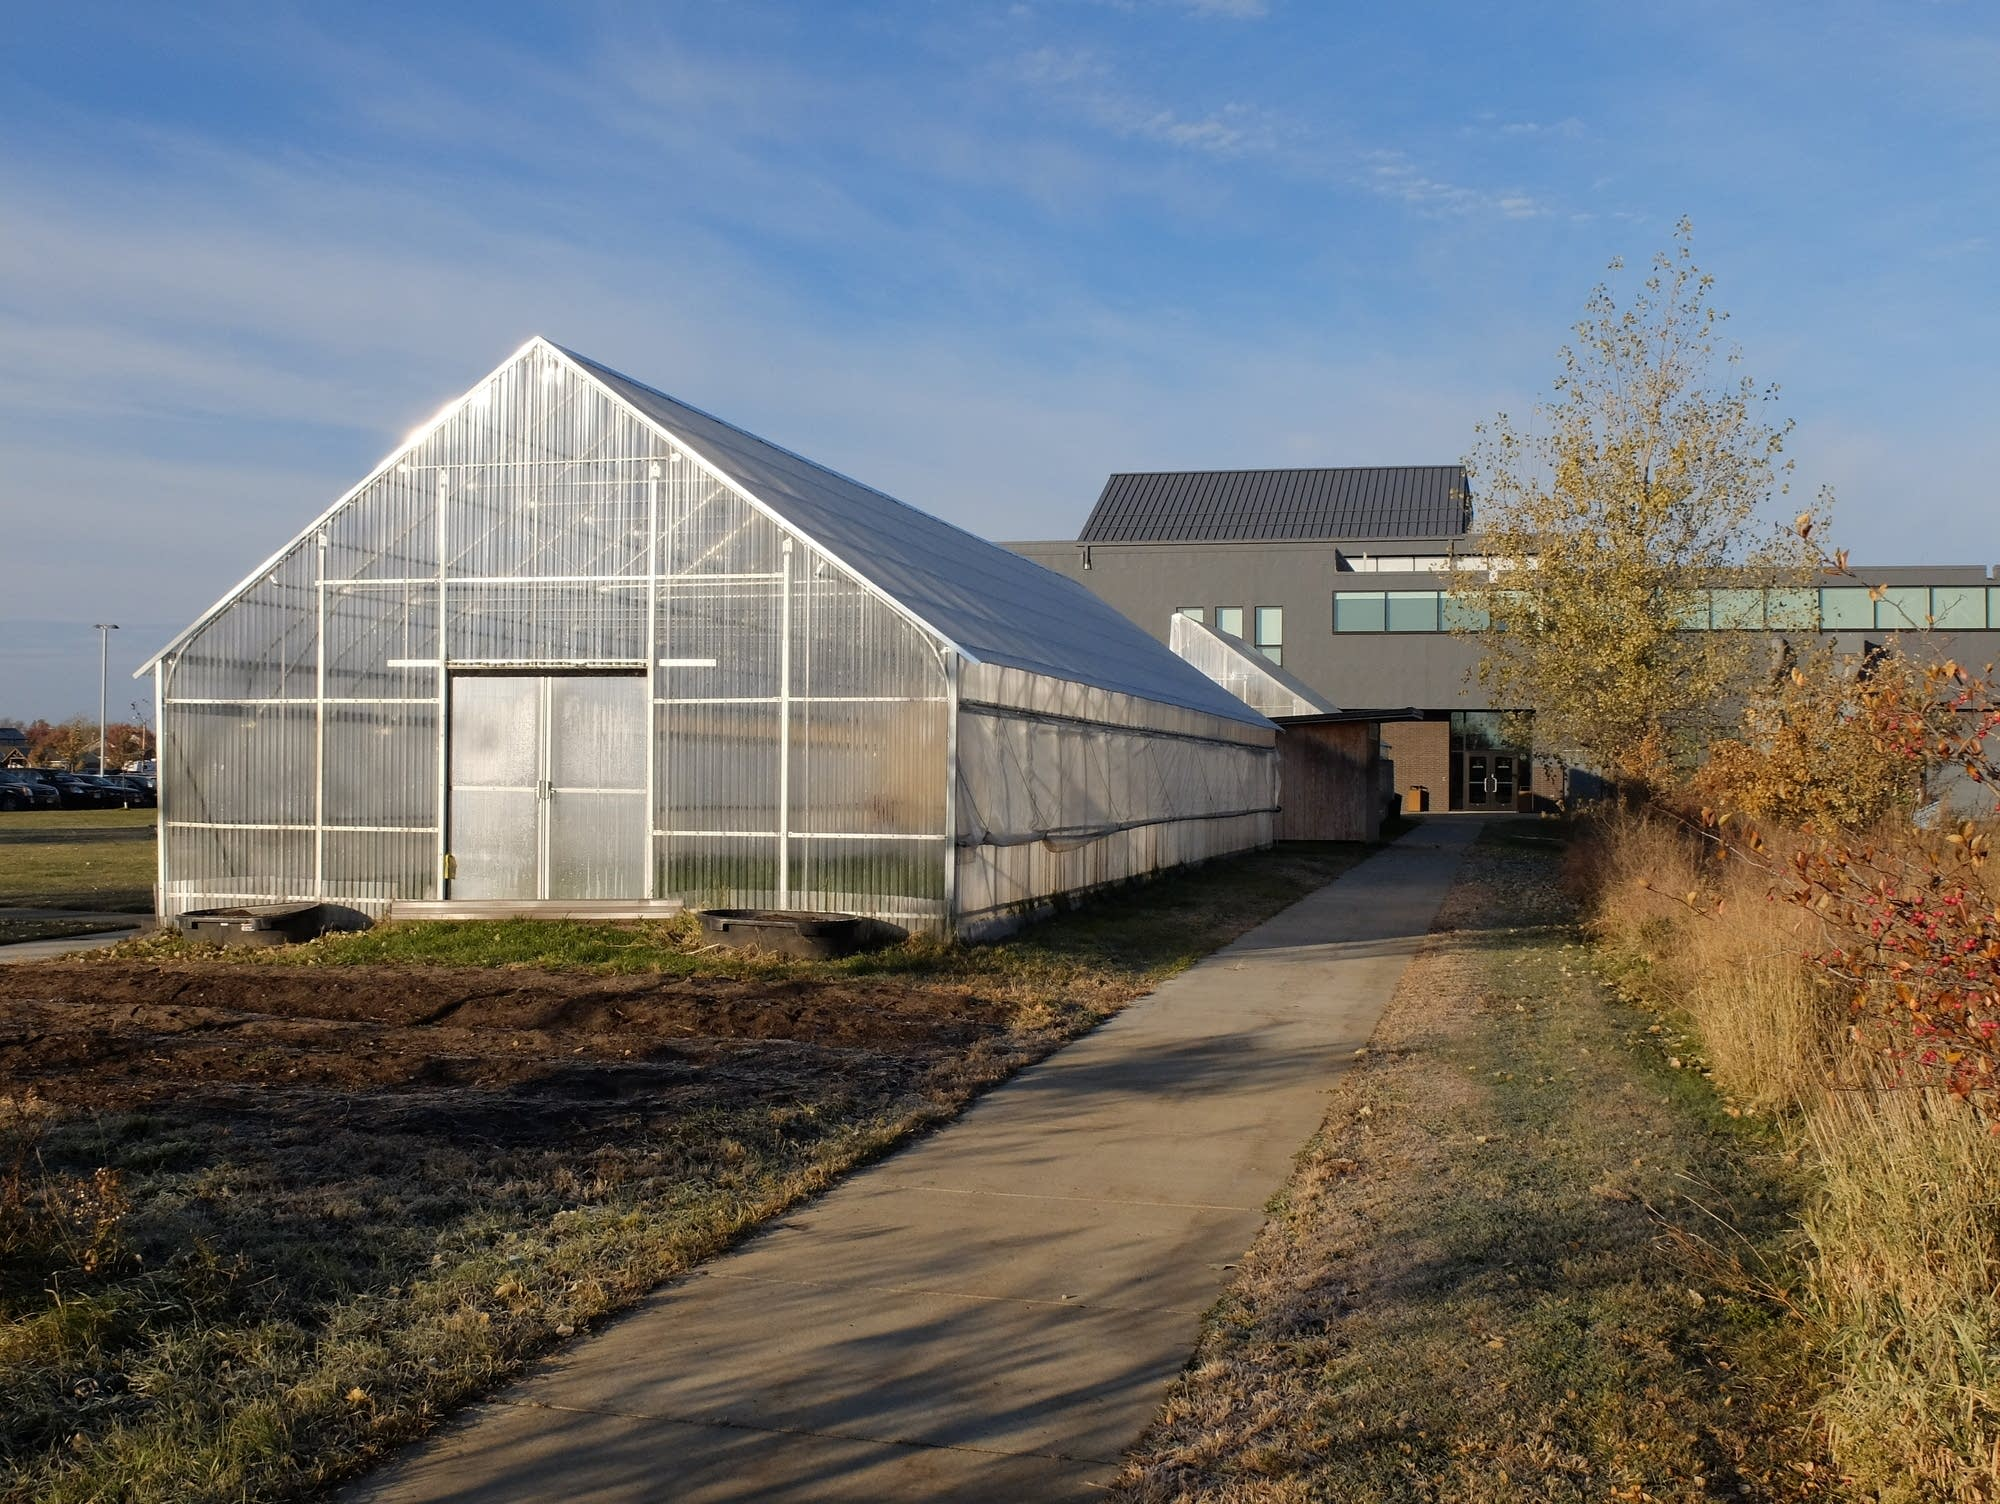 Wadena Deer Creek schools use two greenhouses to grow vegetables.